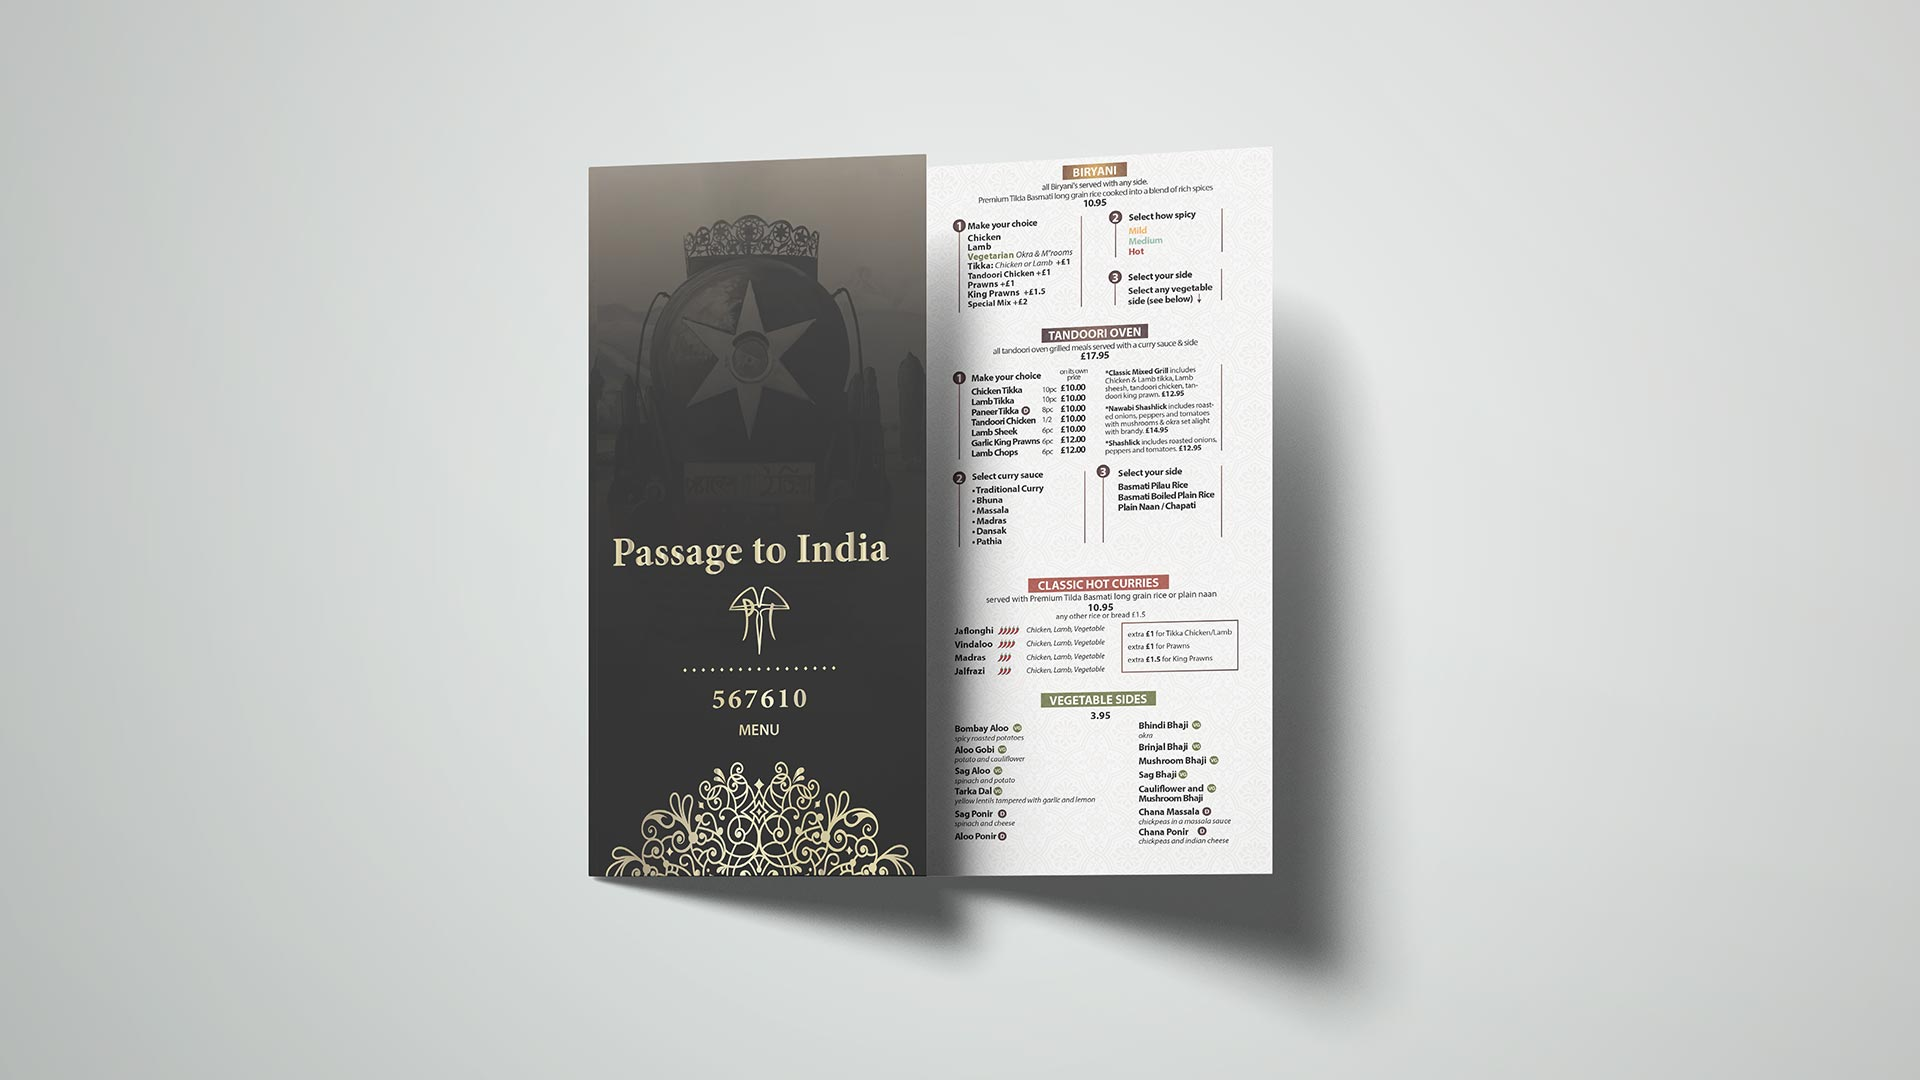 branding restaurant, passage to india menu